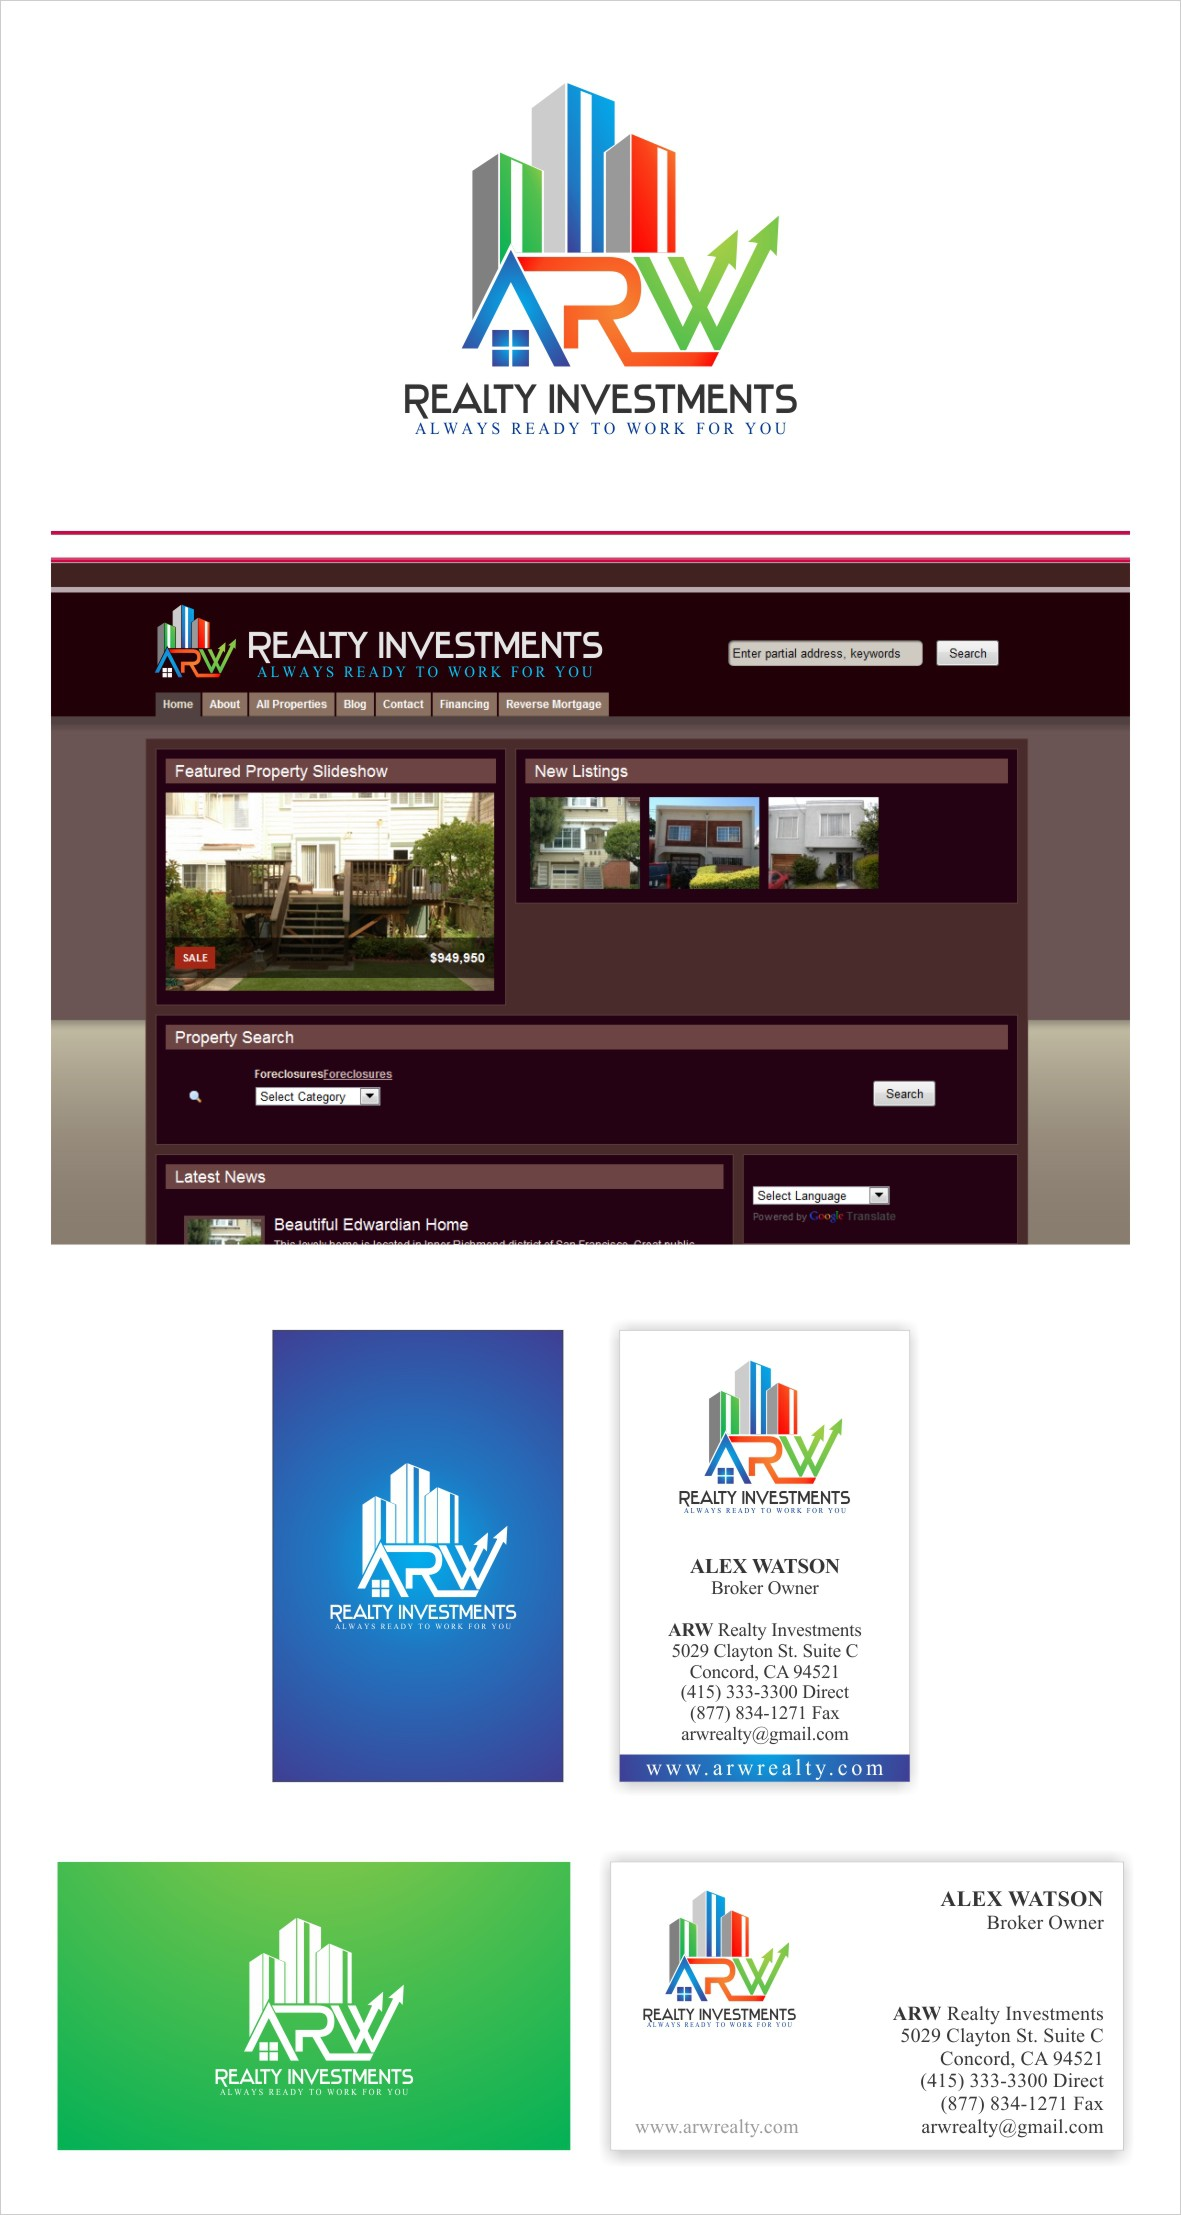 Help ARW Realty Investments with a new logo